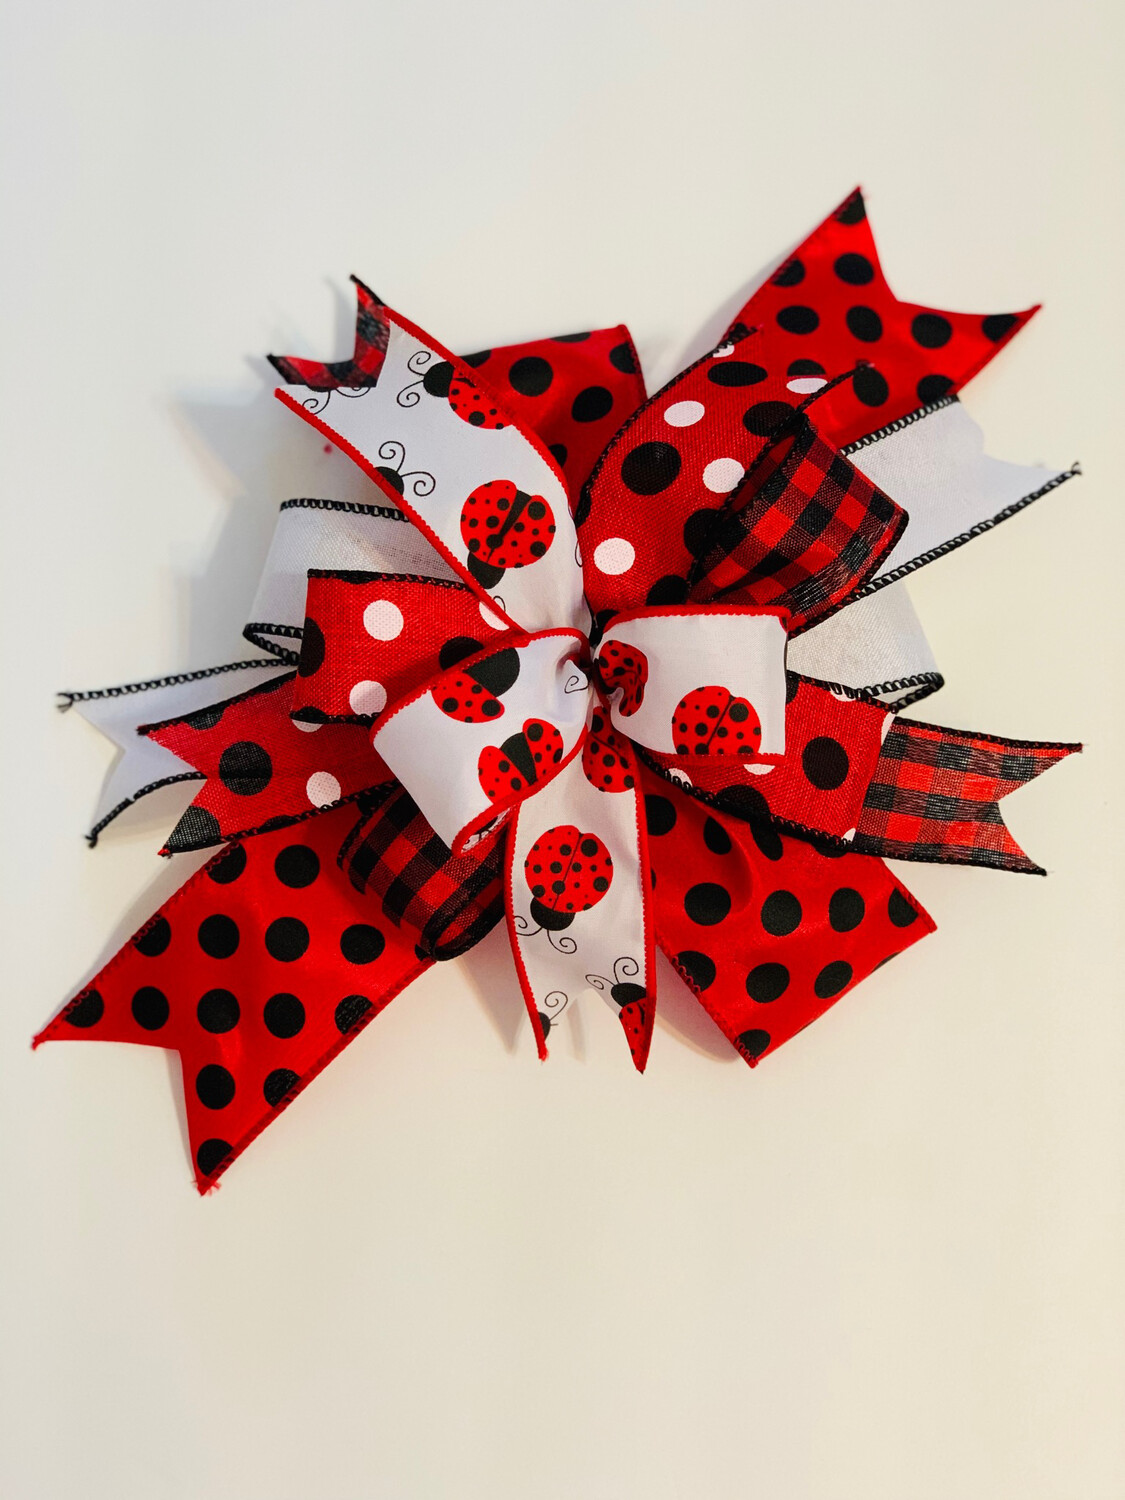 Ladybug Bow for Wreath, Red Black Décor, A Touch of Faith